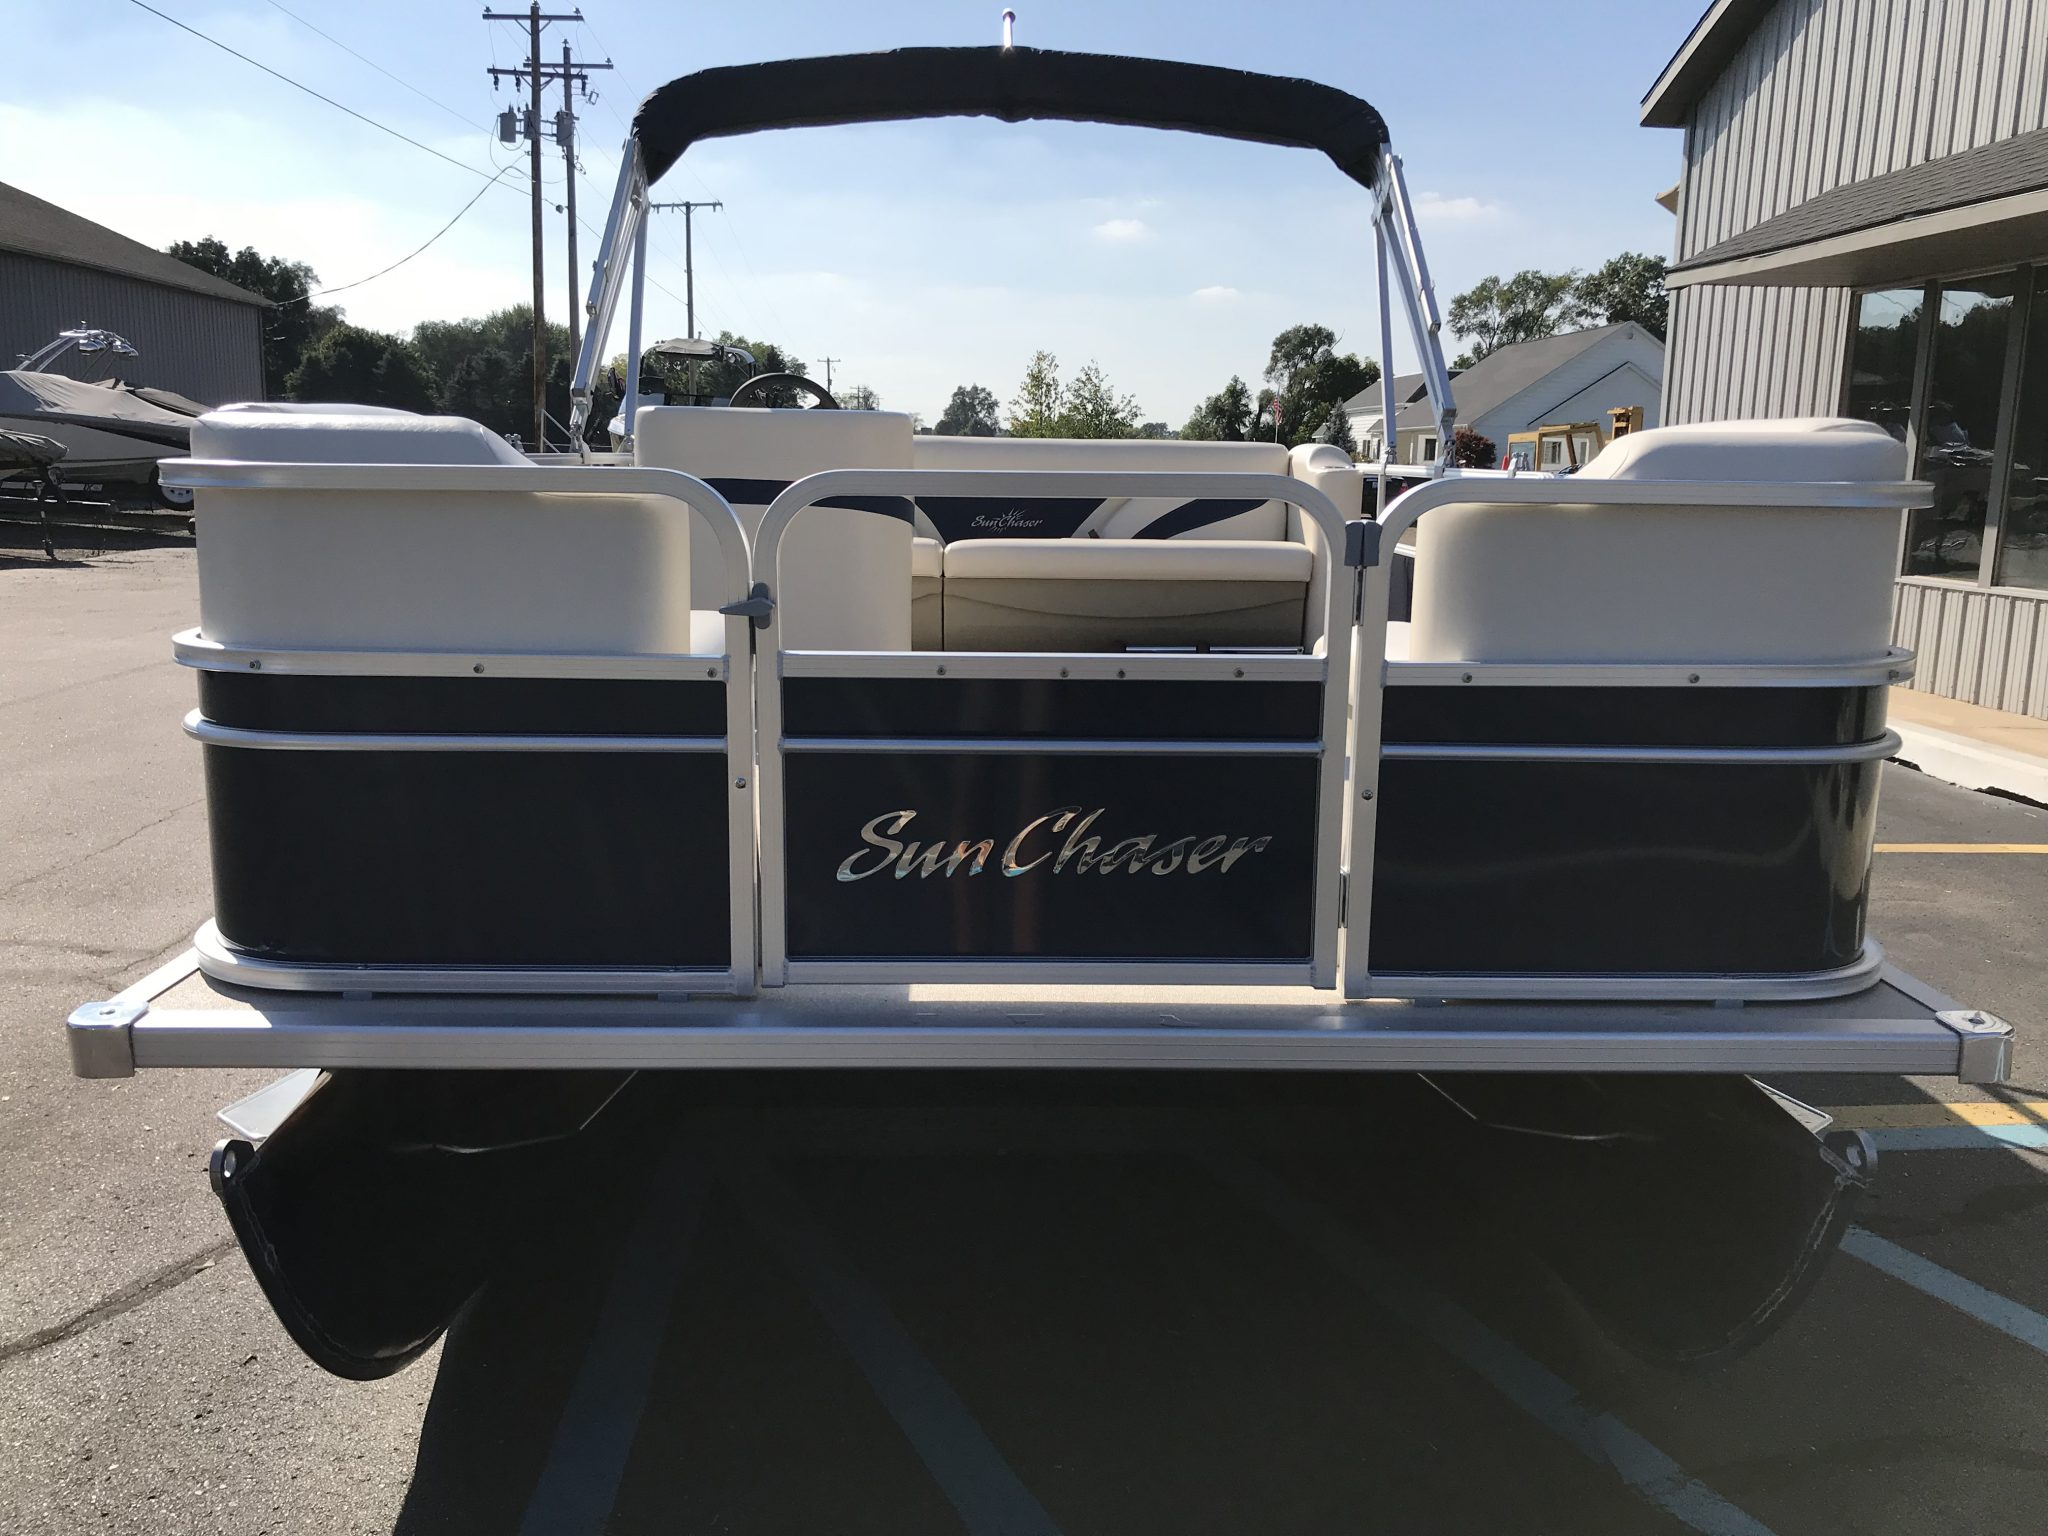 2019 SunChaser 816 Cruise Blue 3